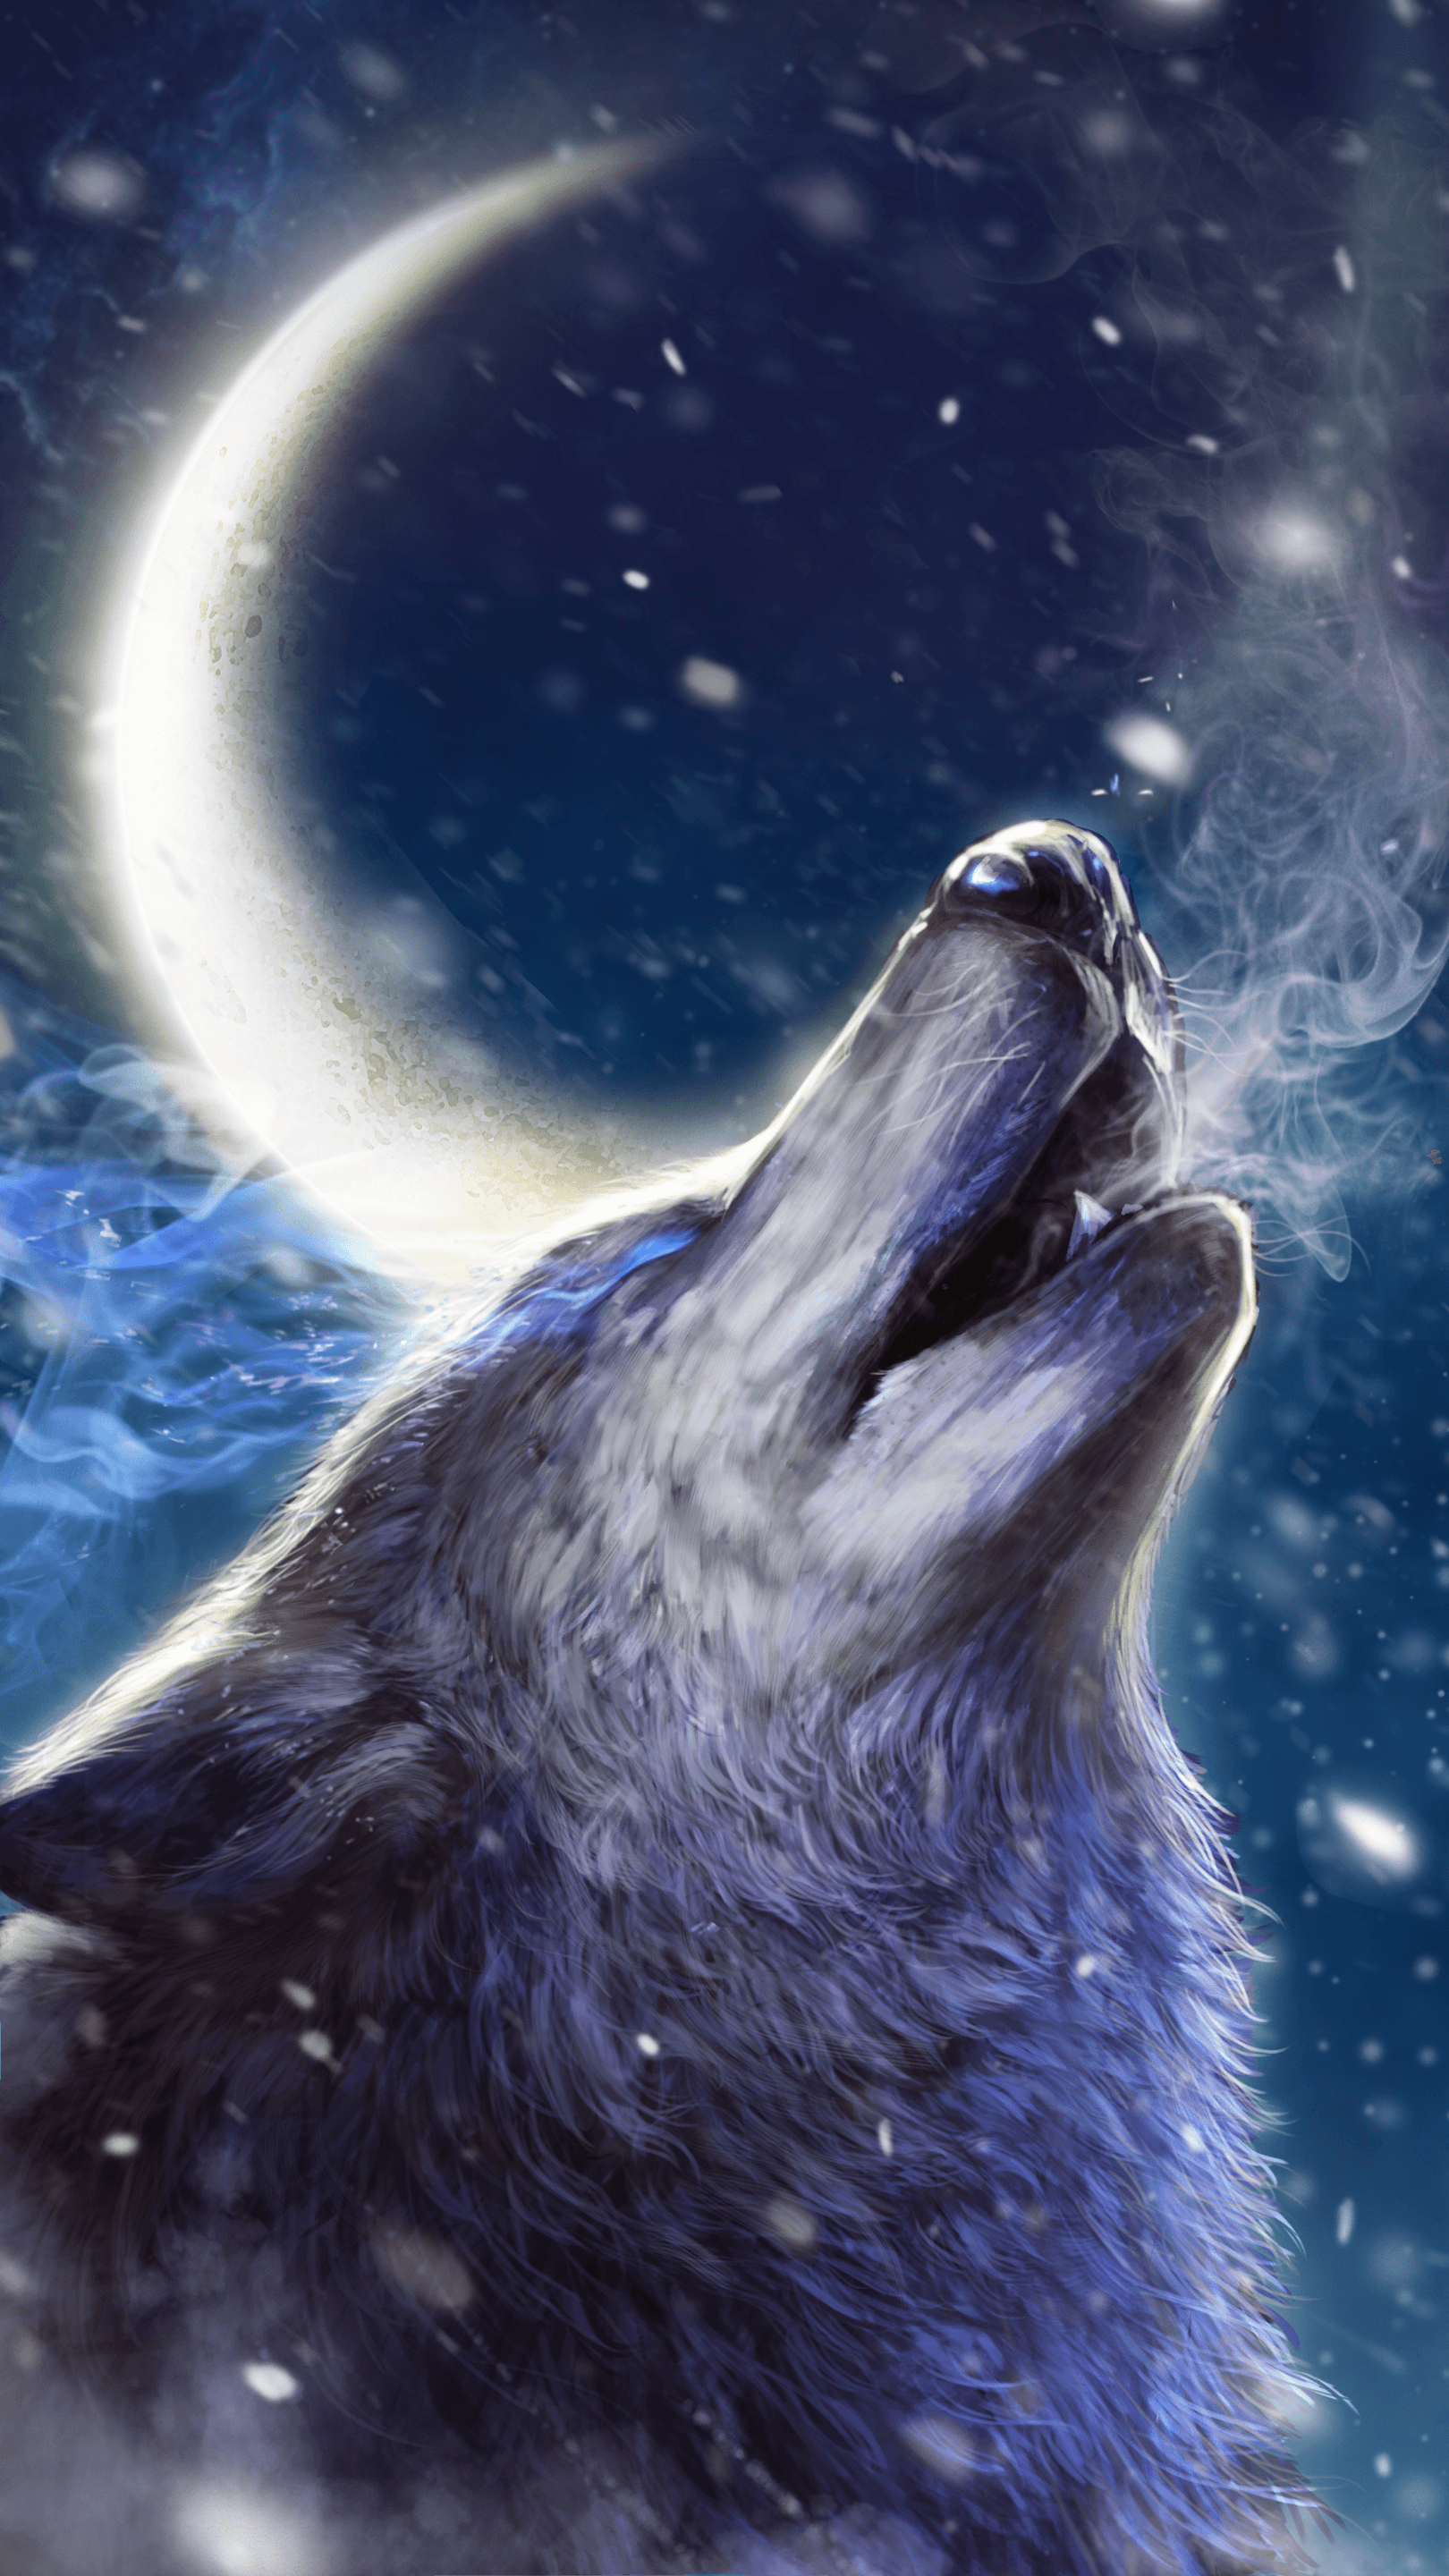 Howling Wolf Wallpapers Top Free Howling Wolf Backgrounds